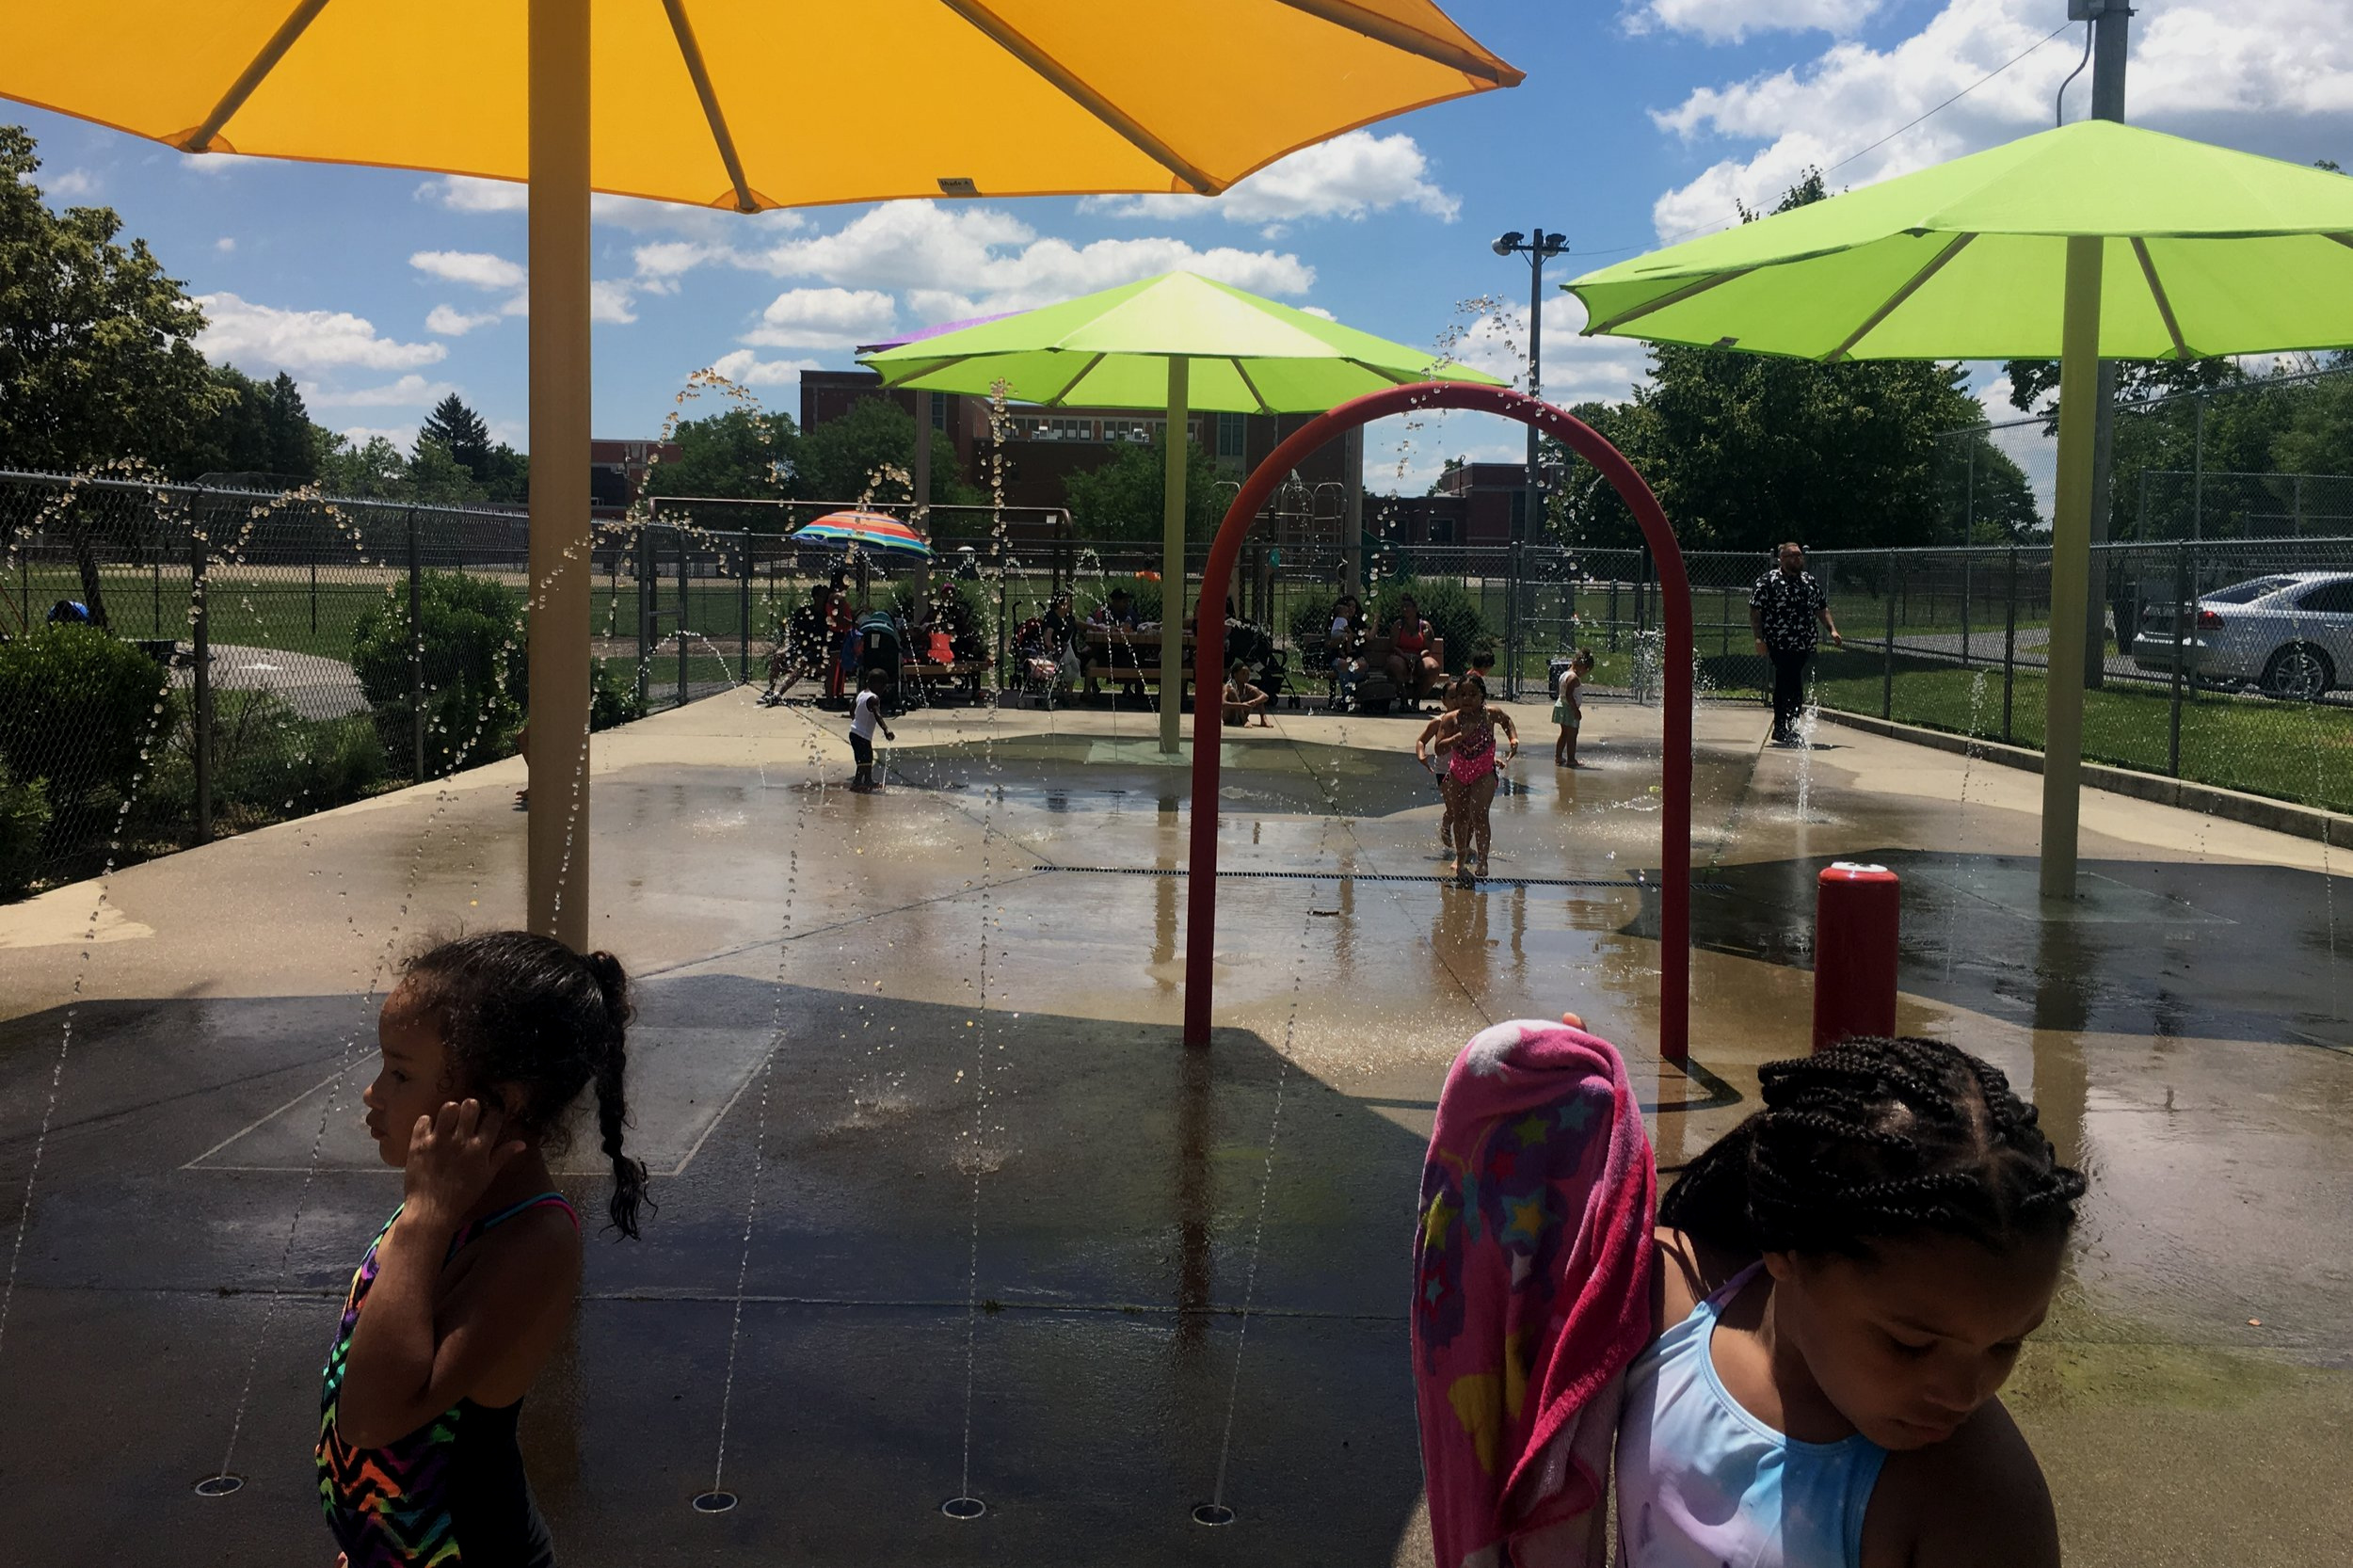 The George J. West Water Park is a great place to help kids stay cool this summer!